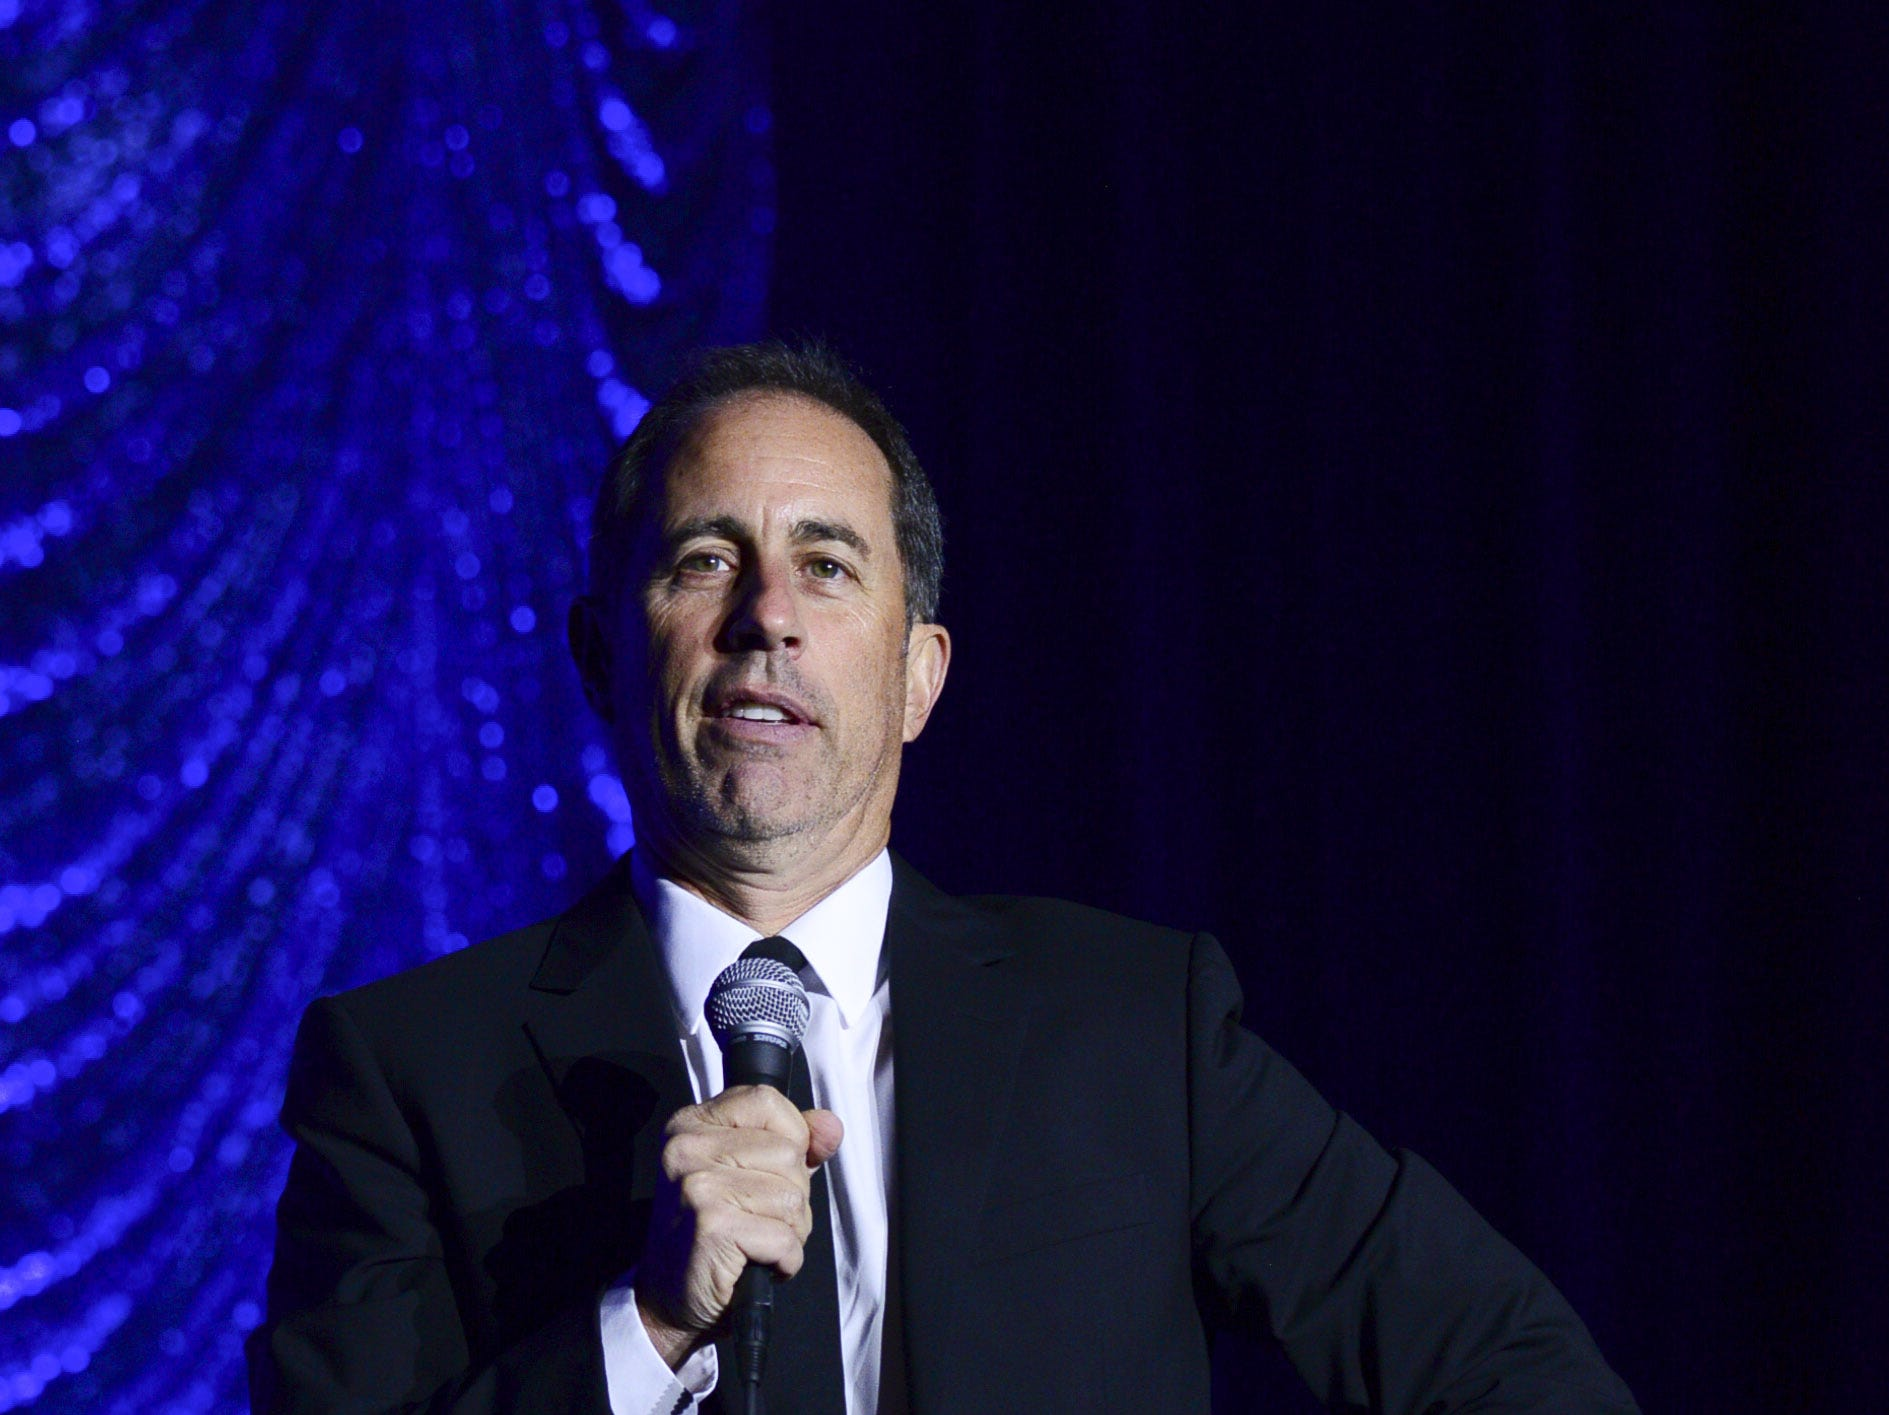 PHILADELPHIA, PENNSYLVANIA - NOVEMBER 10: Jerry Seinfeld performs during Philly Fights Cancer: Round 4 at The Philadelphia Navy Yard on November 10, 2018 in Philadelphia, Pennsylvania. (Photo by Lisa Lake/Getty Images for Philly Fights Cancer) ORG XMIT: 775255610 ORIG FILE ID: 1066224580